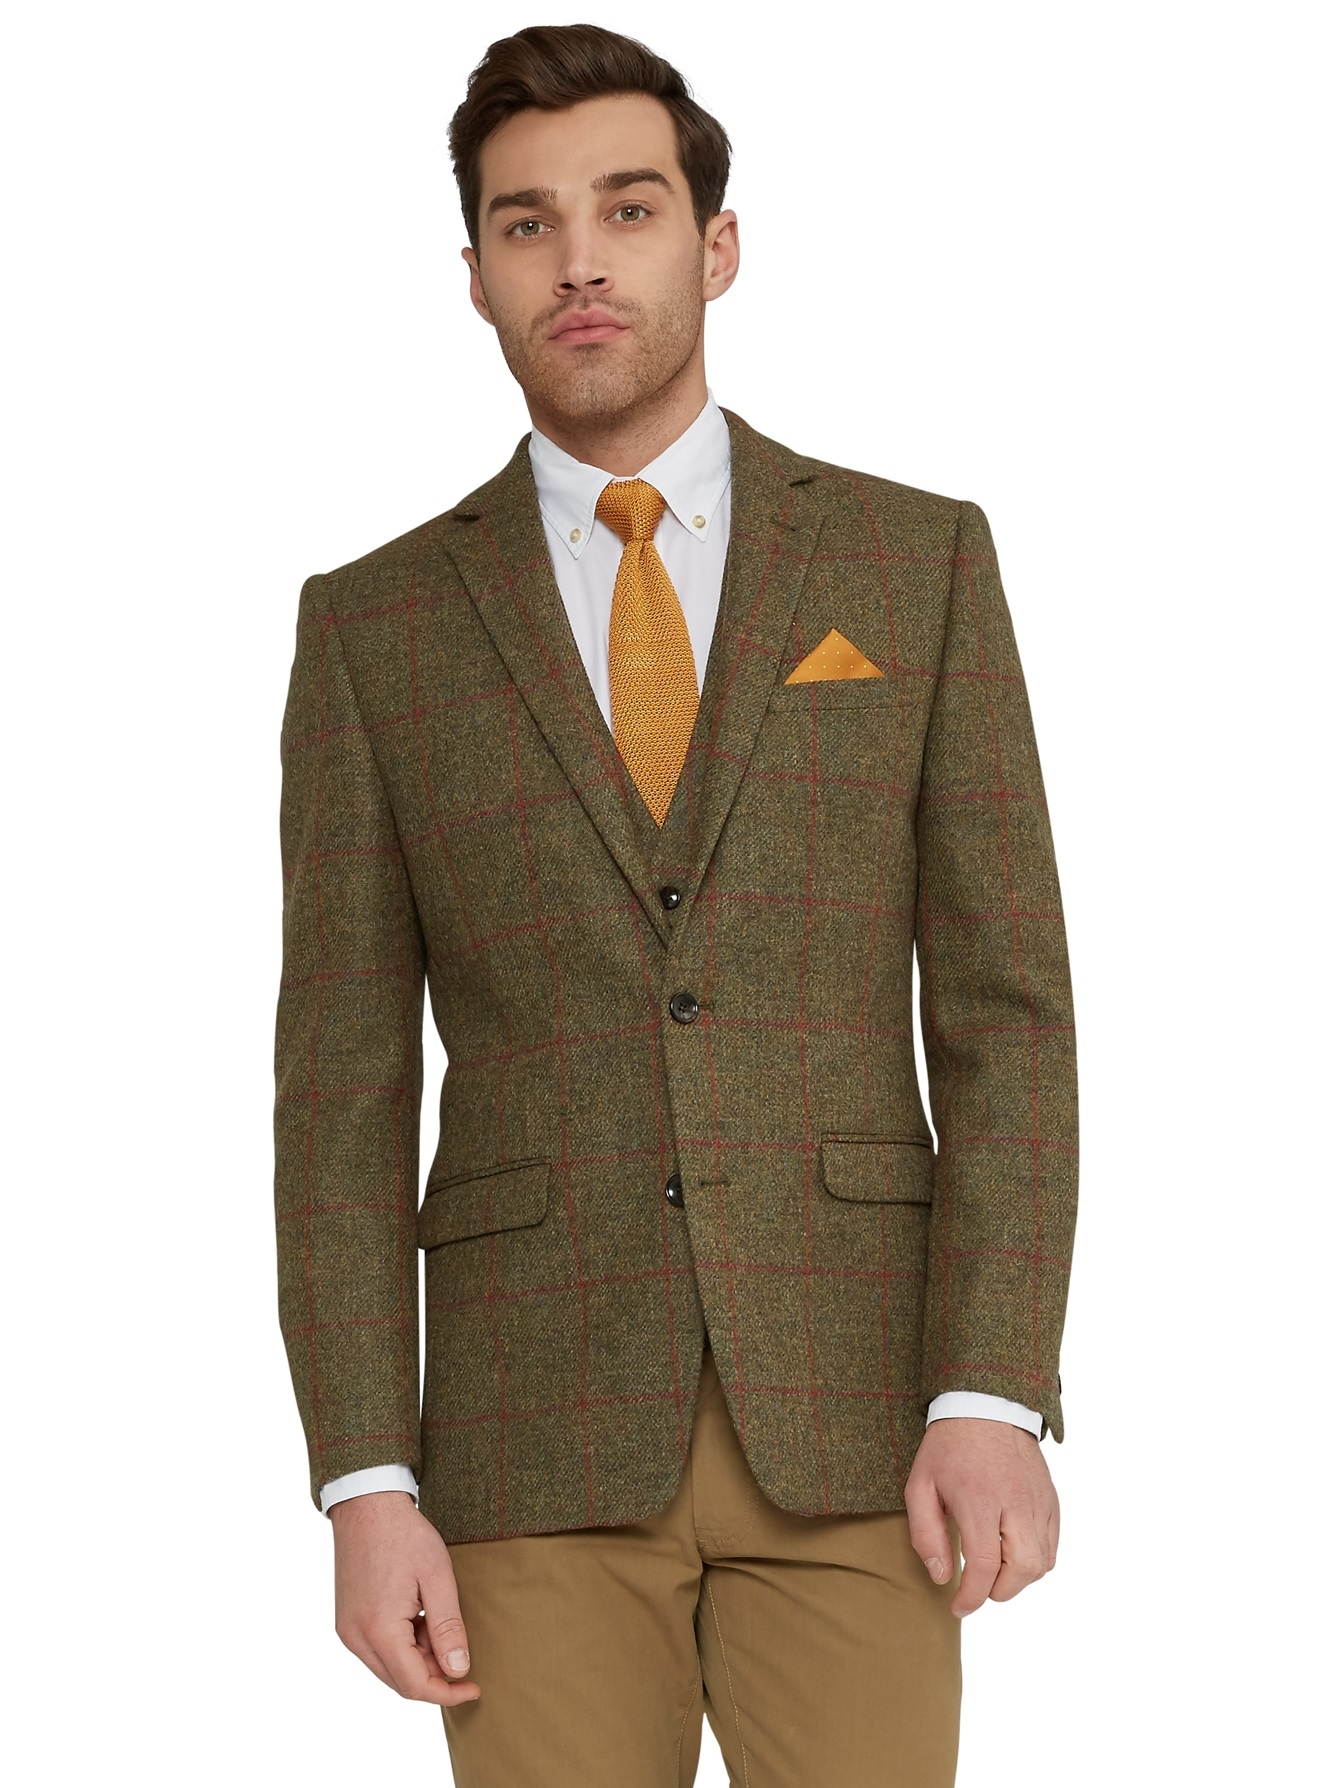 Find great deals on eBay for brown mens suit jacket. Shop with confidence.